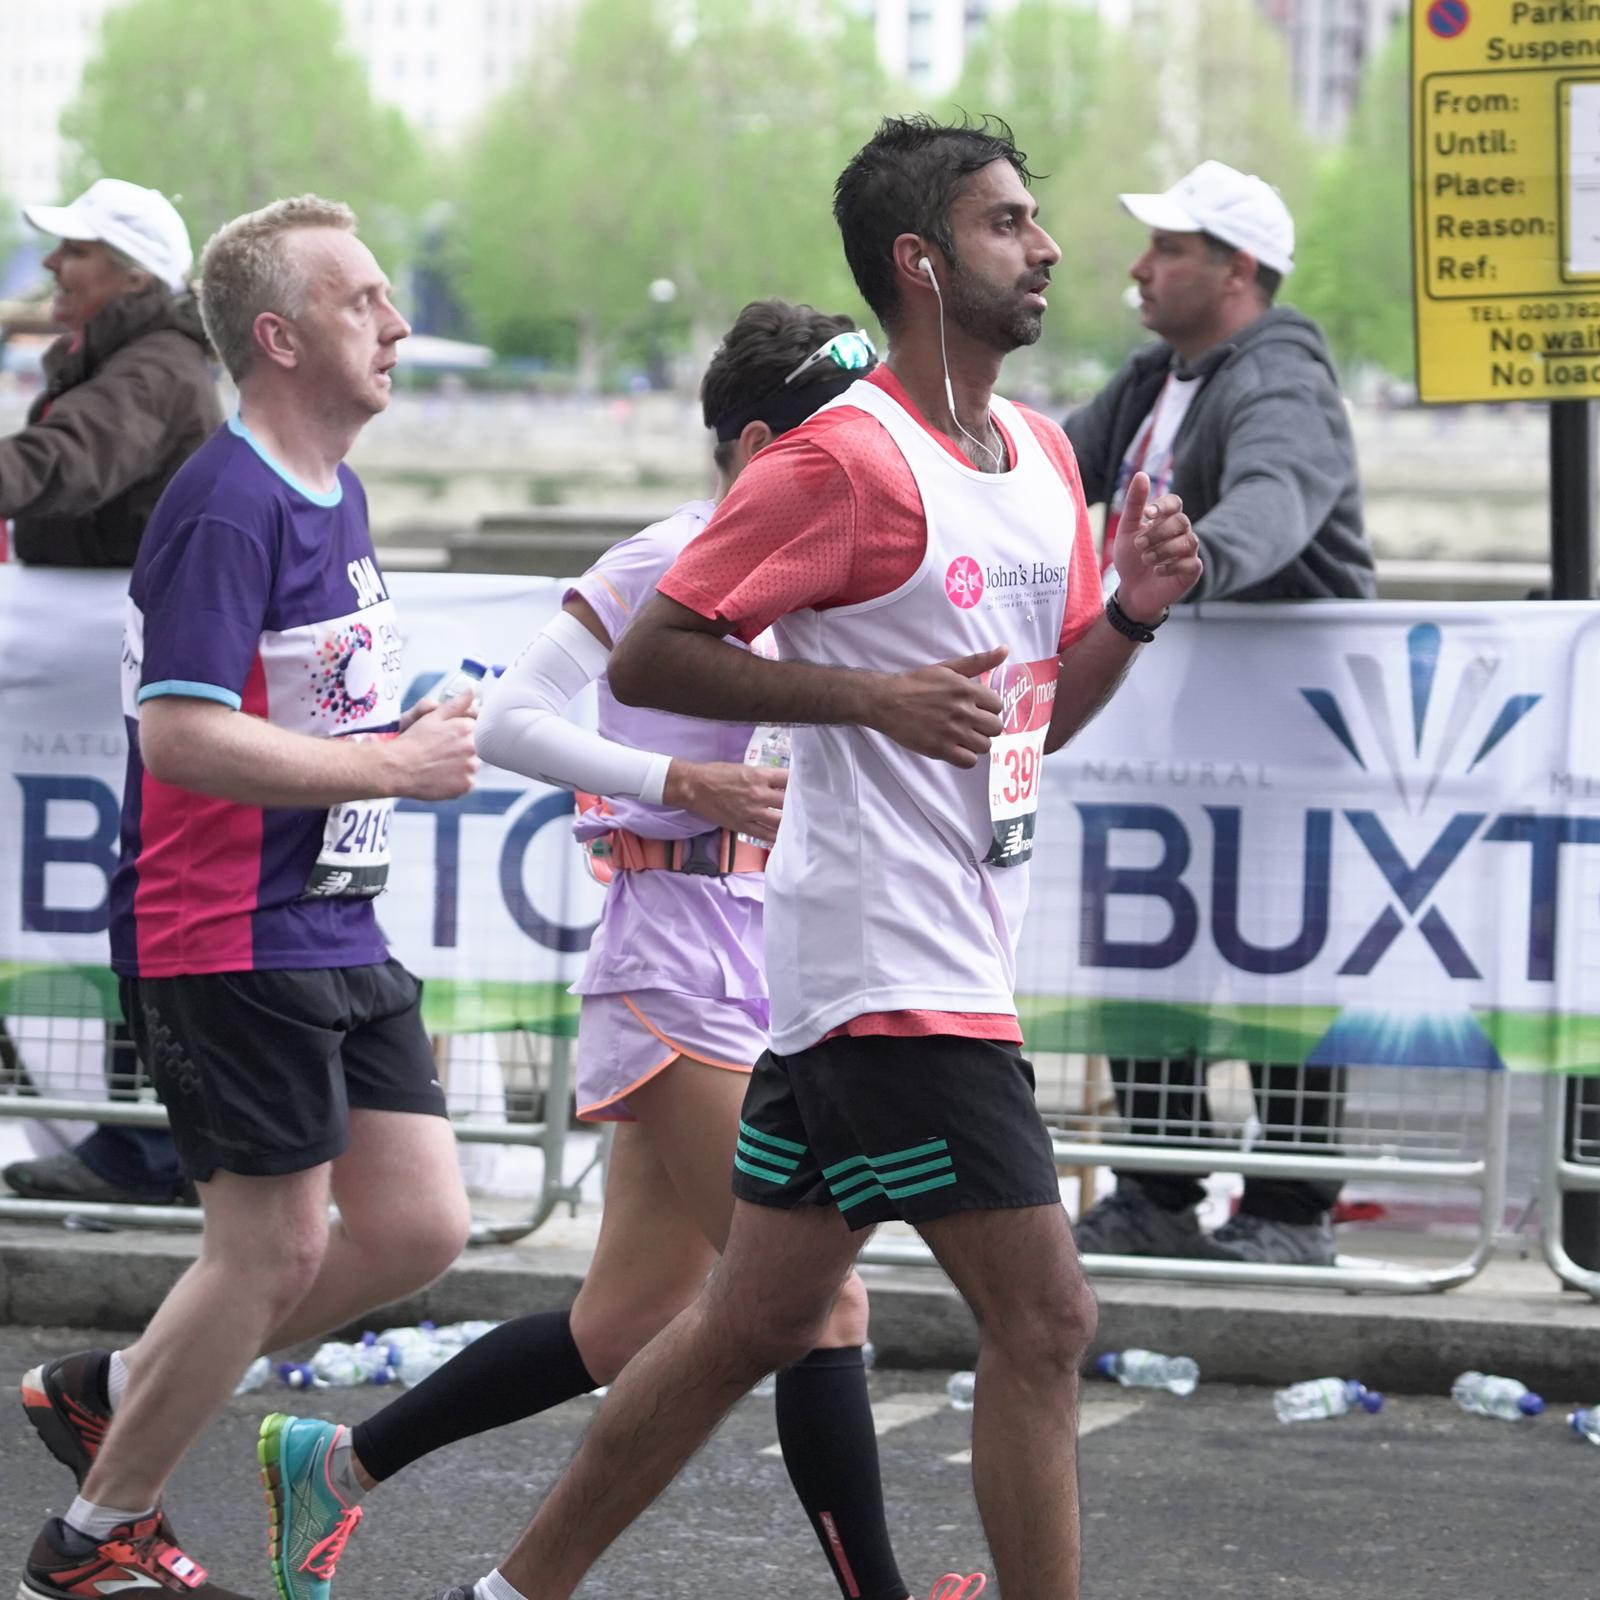 Sageet running the London Marathon